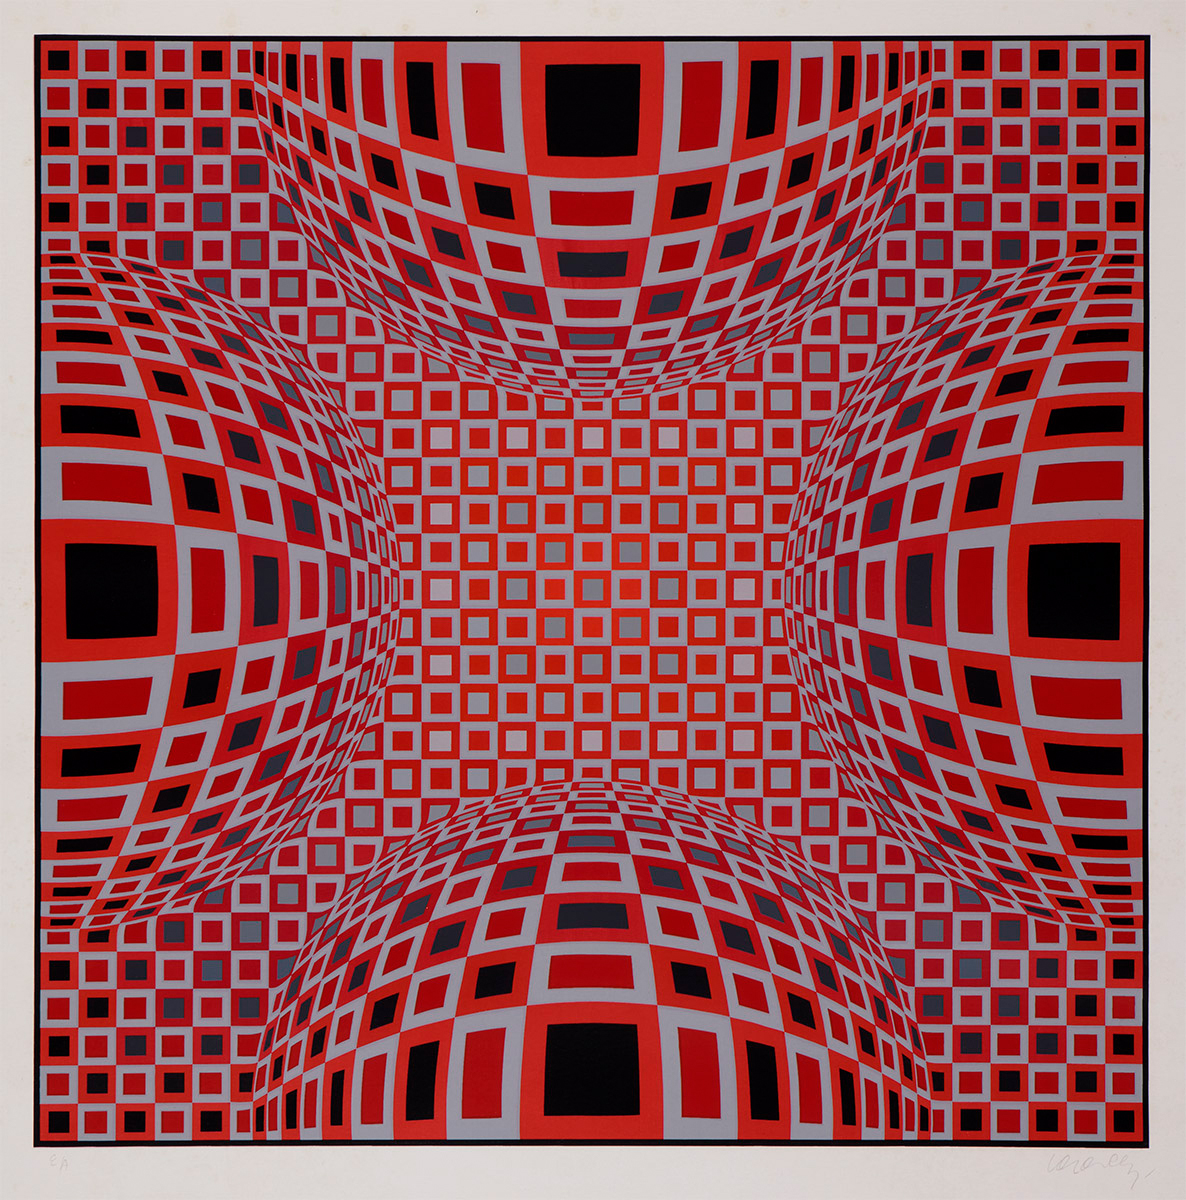 Four Globes in Red by Victor Vasarely